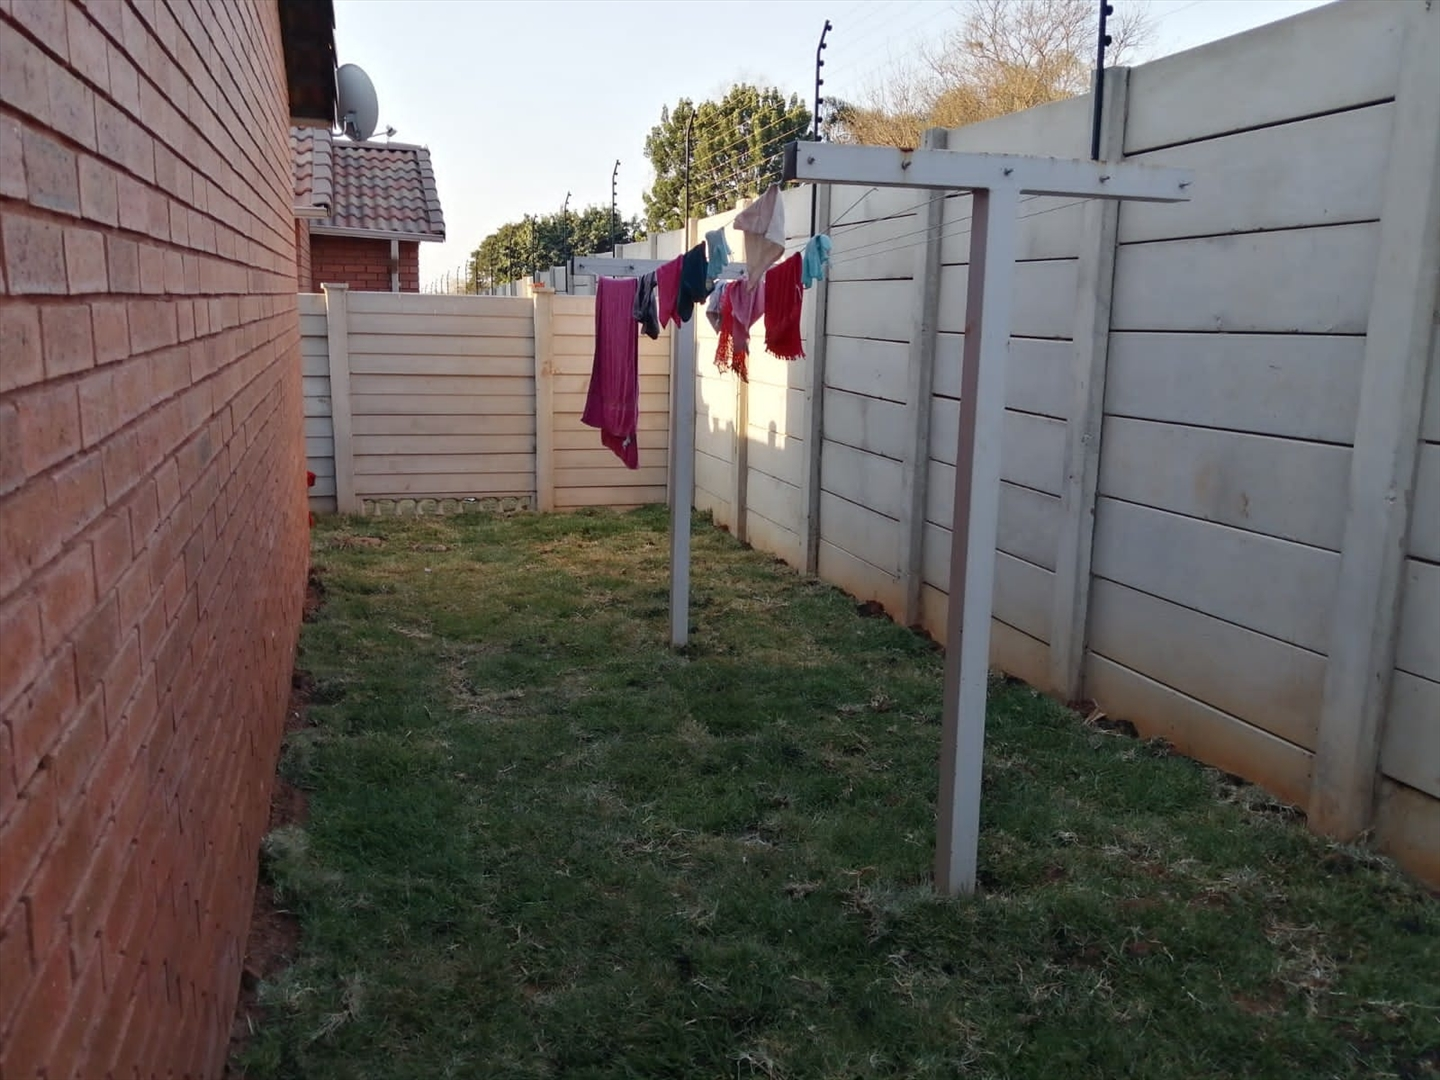 Private garden with washing line